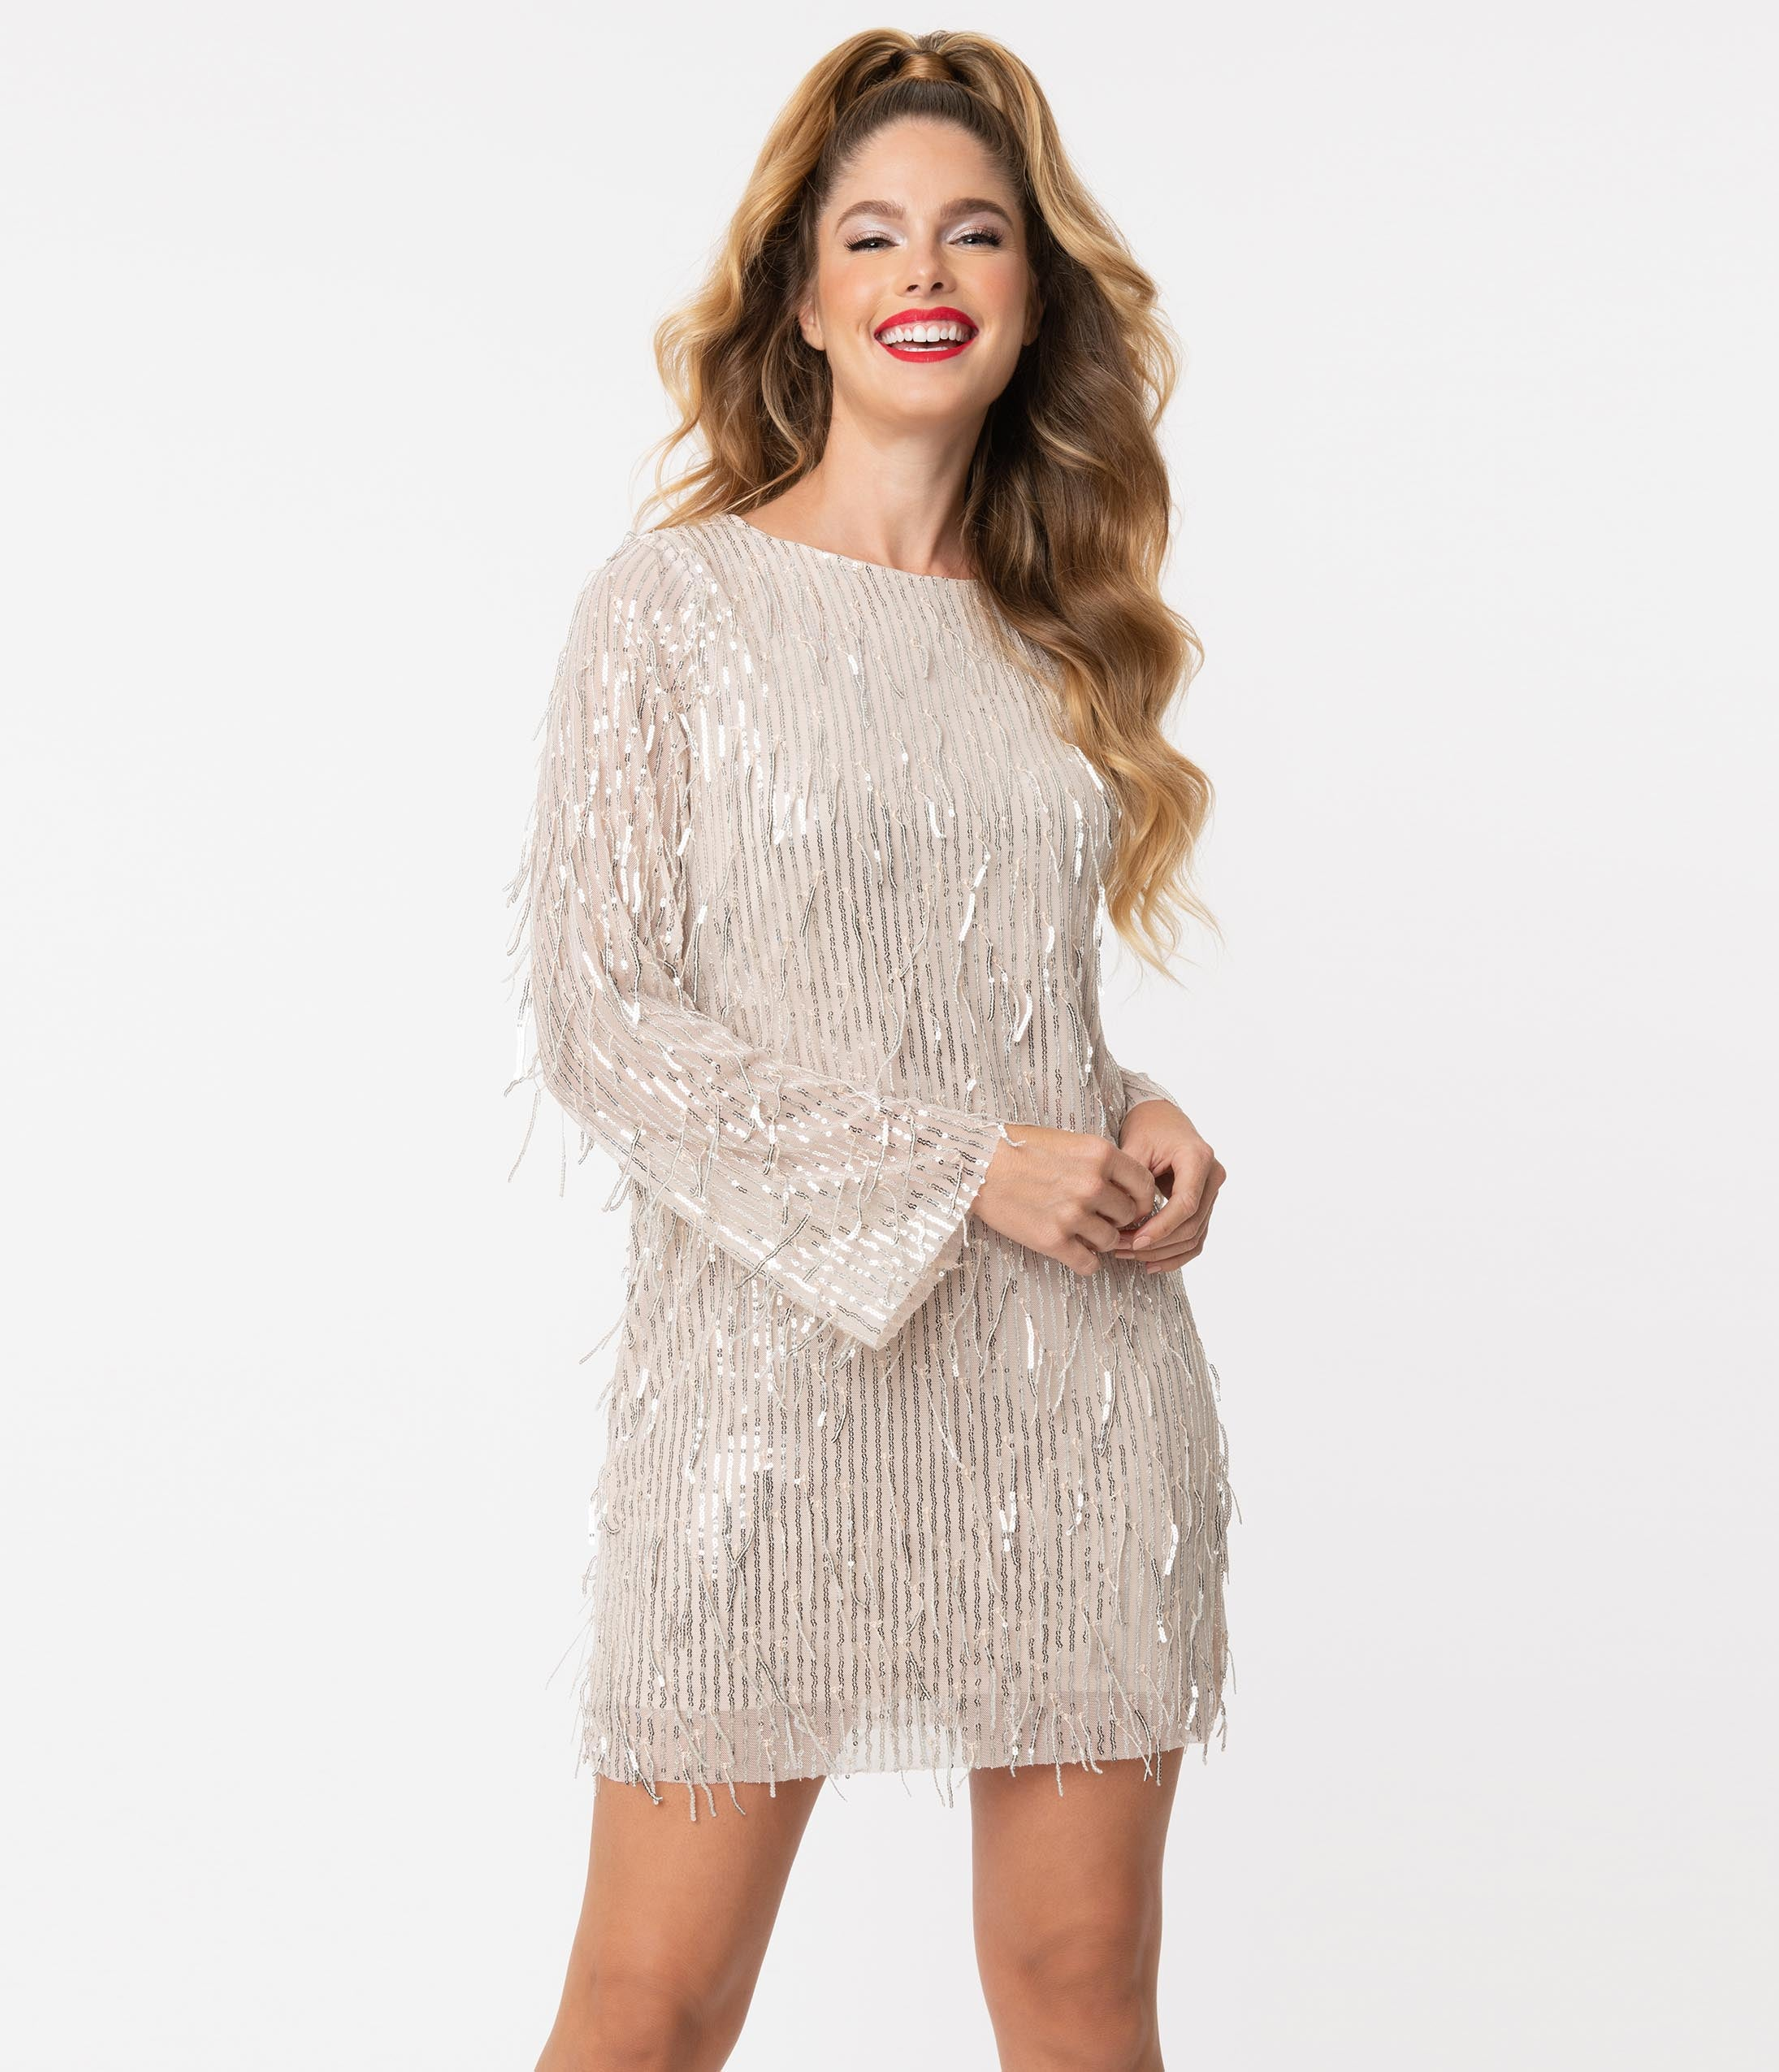 70s Dresses – Disco Dress, Hippie Dress, Wrap Dress Beige  Silver Sequin Fringe Shift Dress $68.00 AT vintagedancer.com